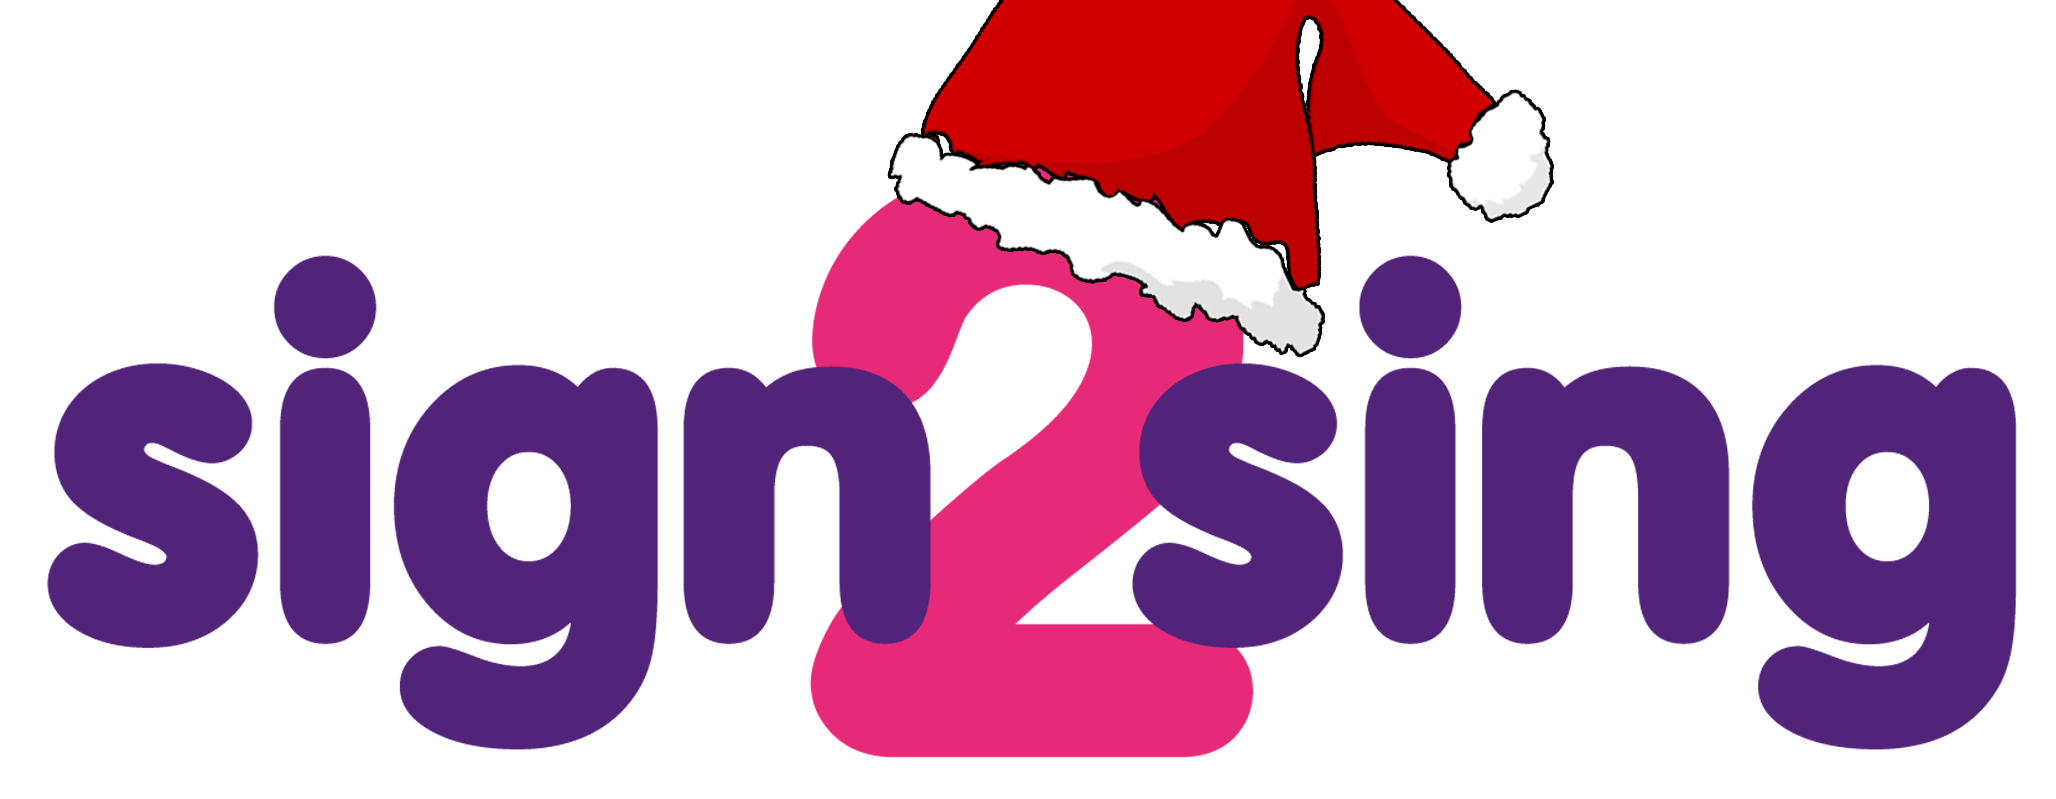 Old-s2s-logo-with-christmas2